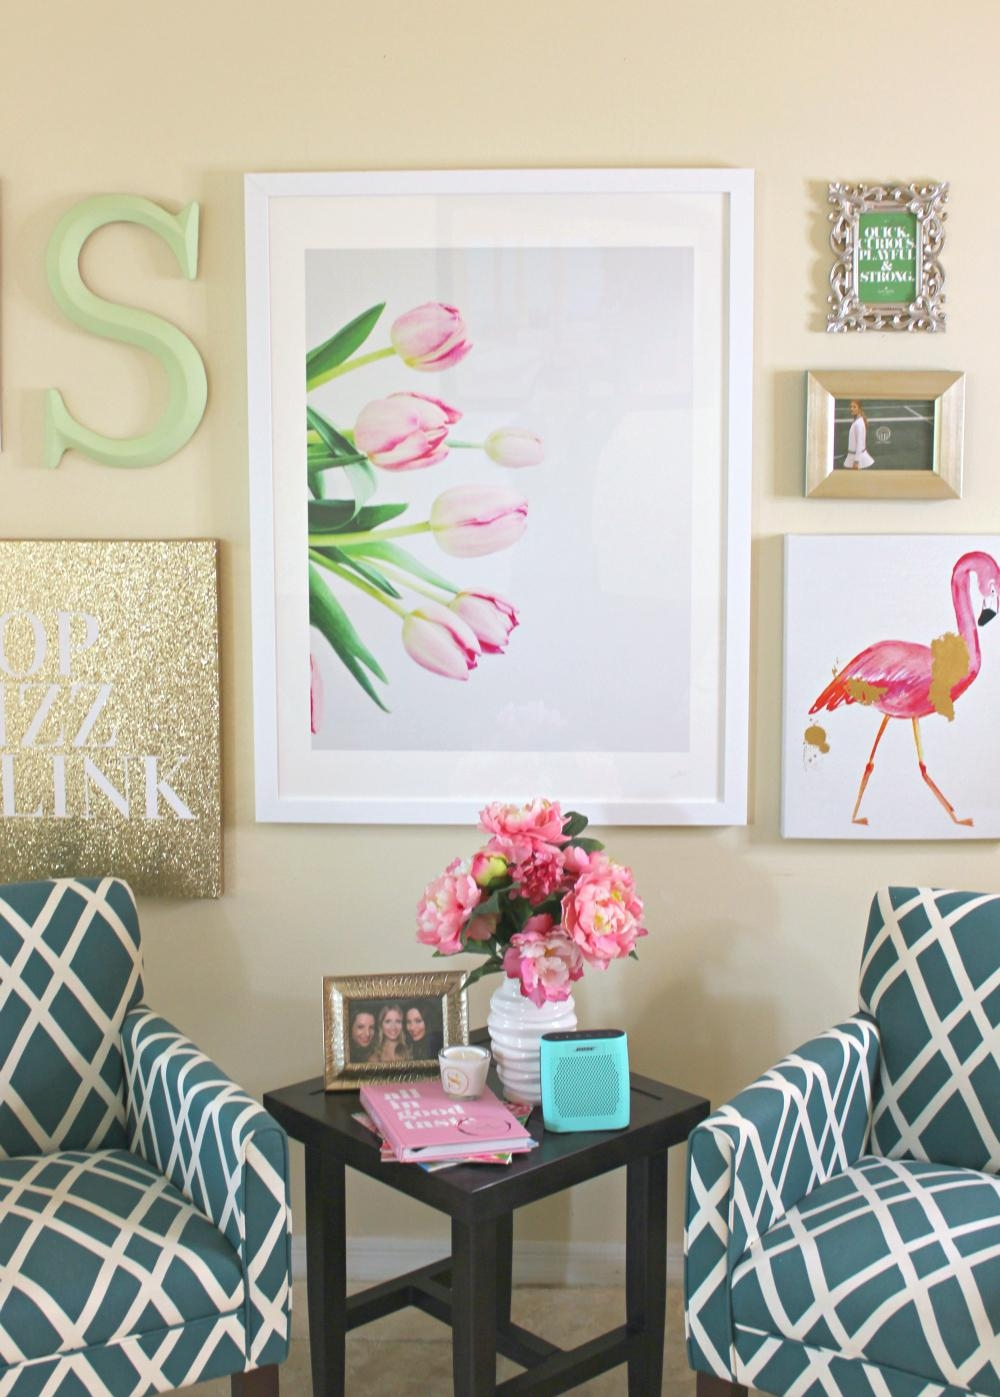 Lilly Pulitzer Inspired Wall Art Collage   Diary Of A Debutante Intended For Vibrant Wall Art (Image 11 of 20)